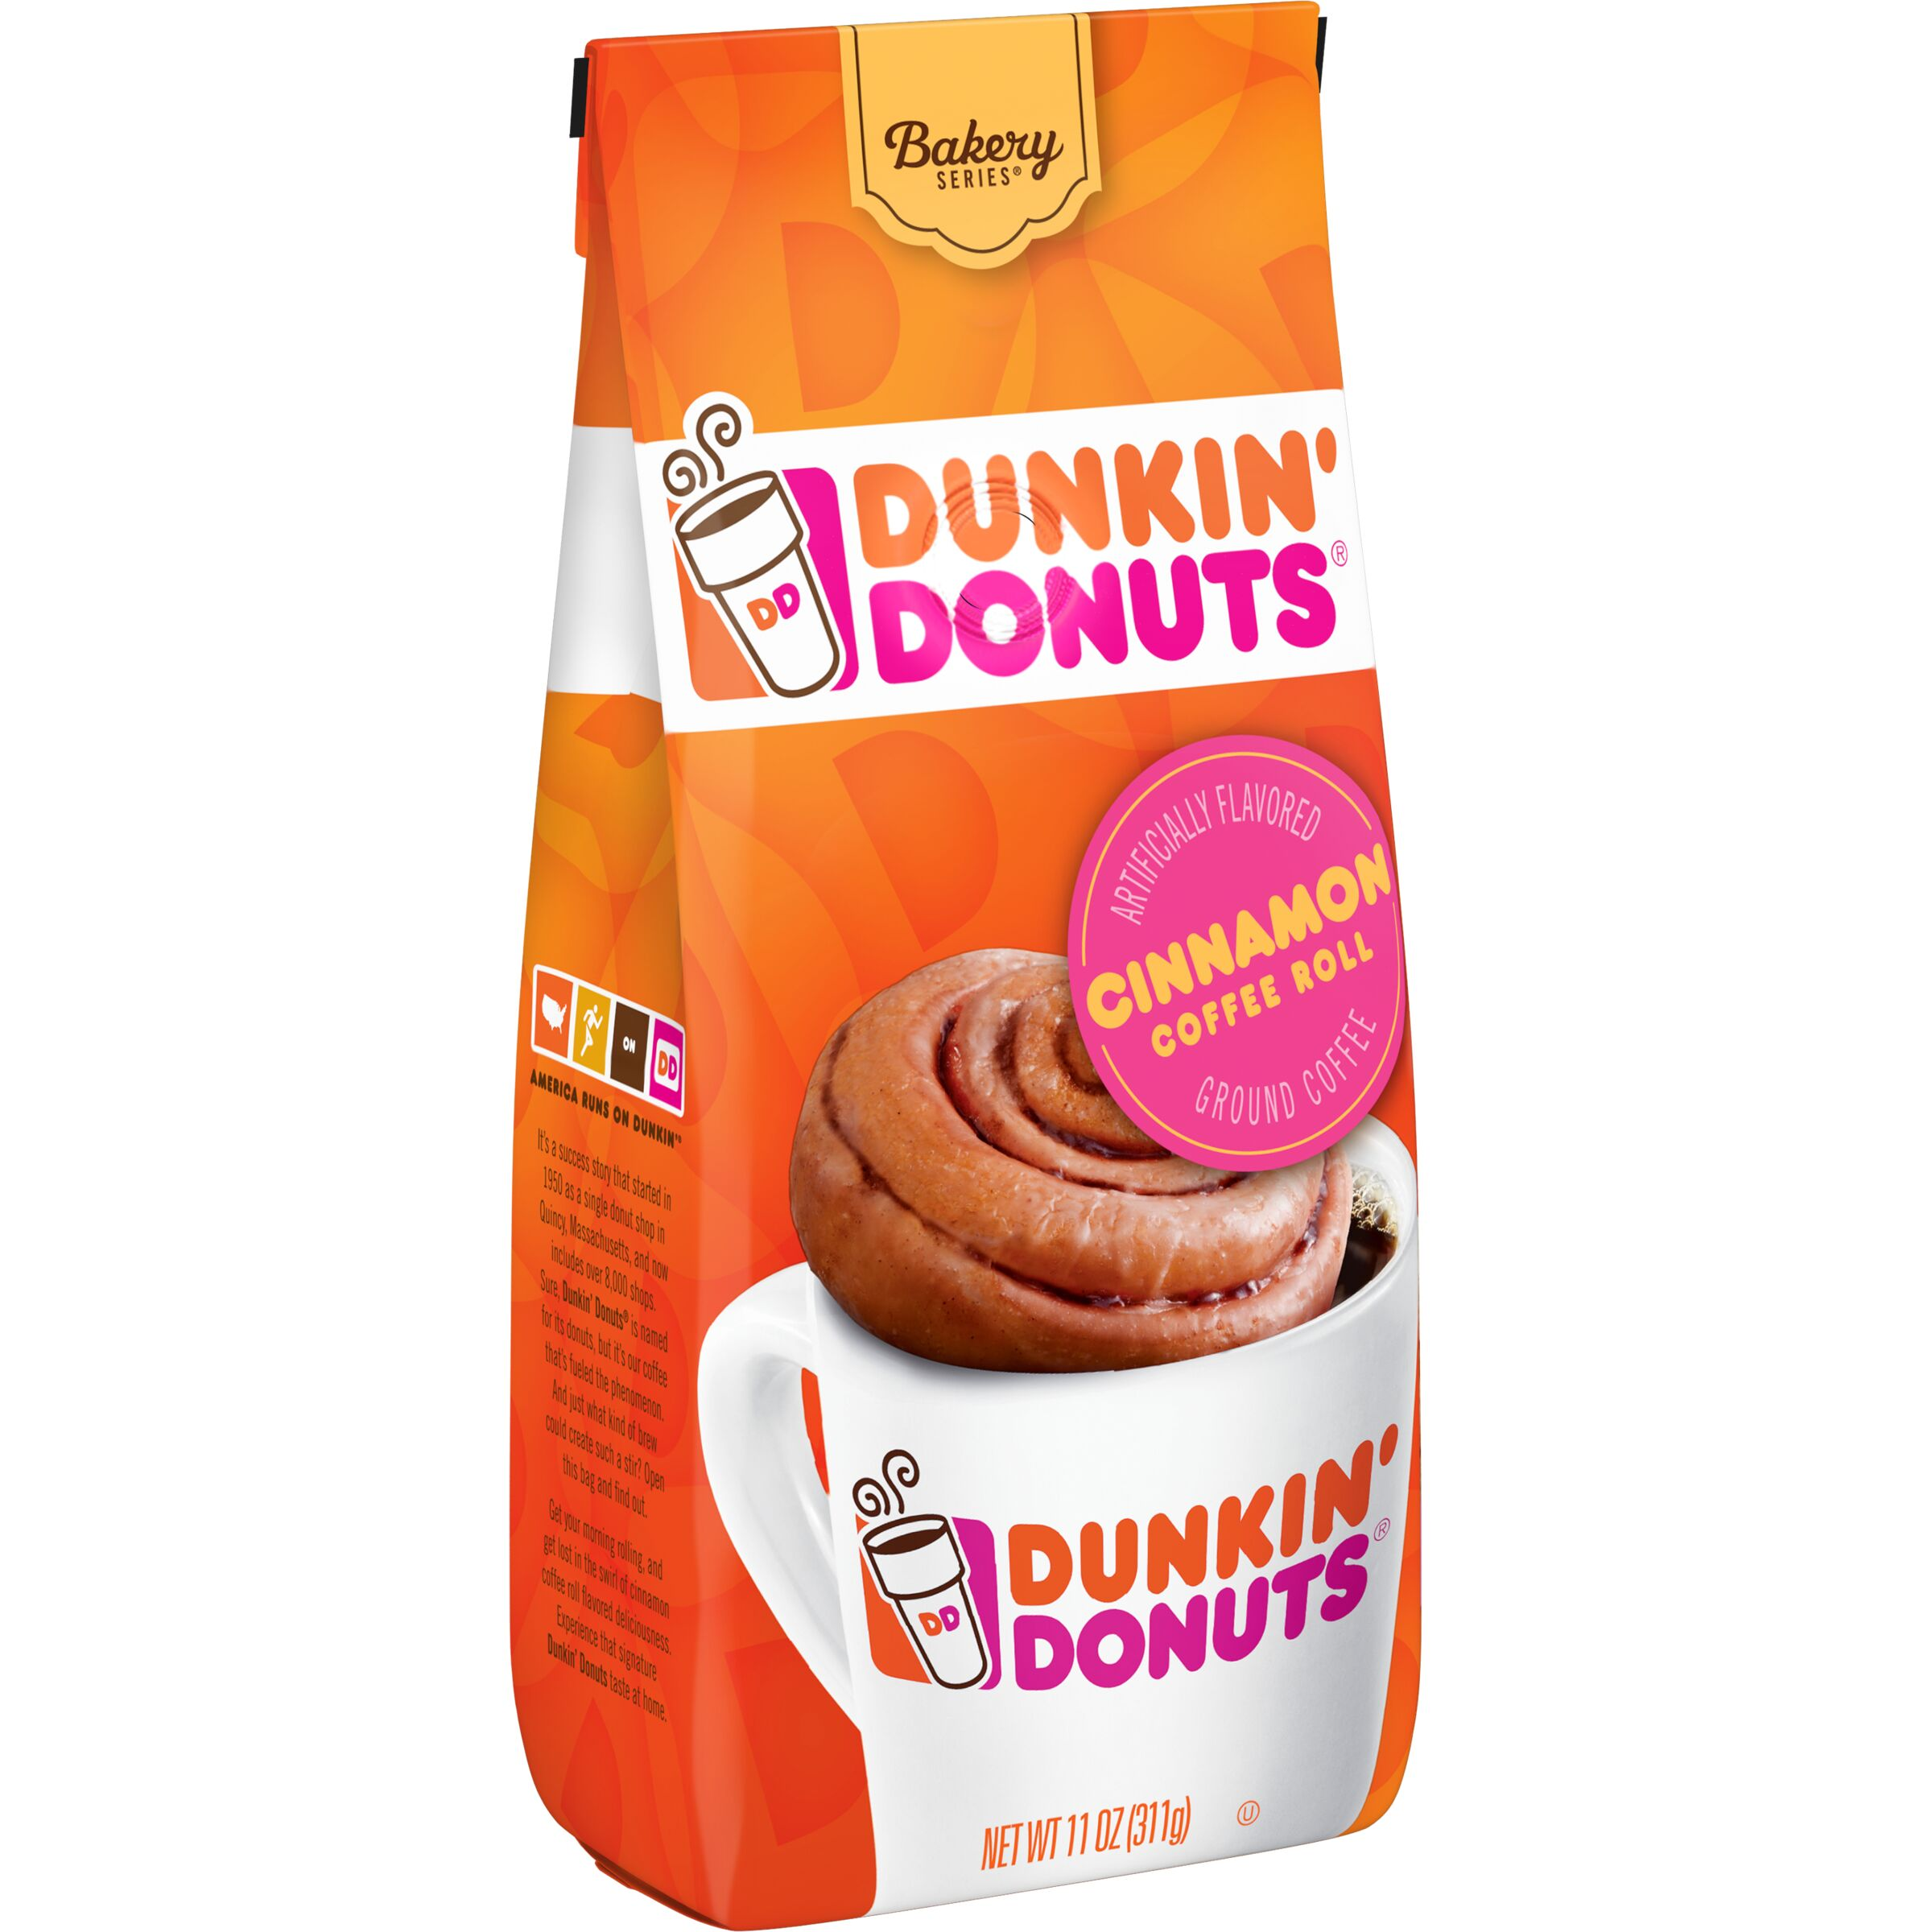 Dunkin' Donuts Bakery Series Cinnamon Coffee Roll Flavored Coffee